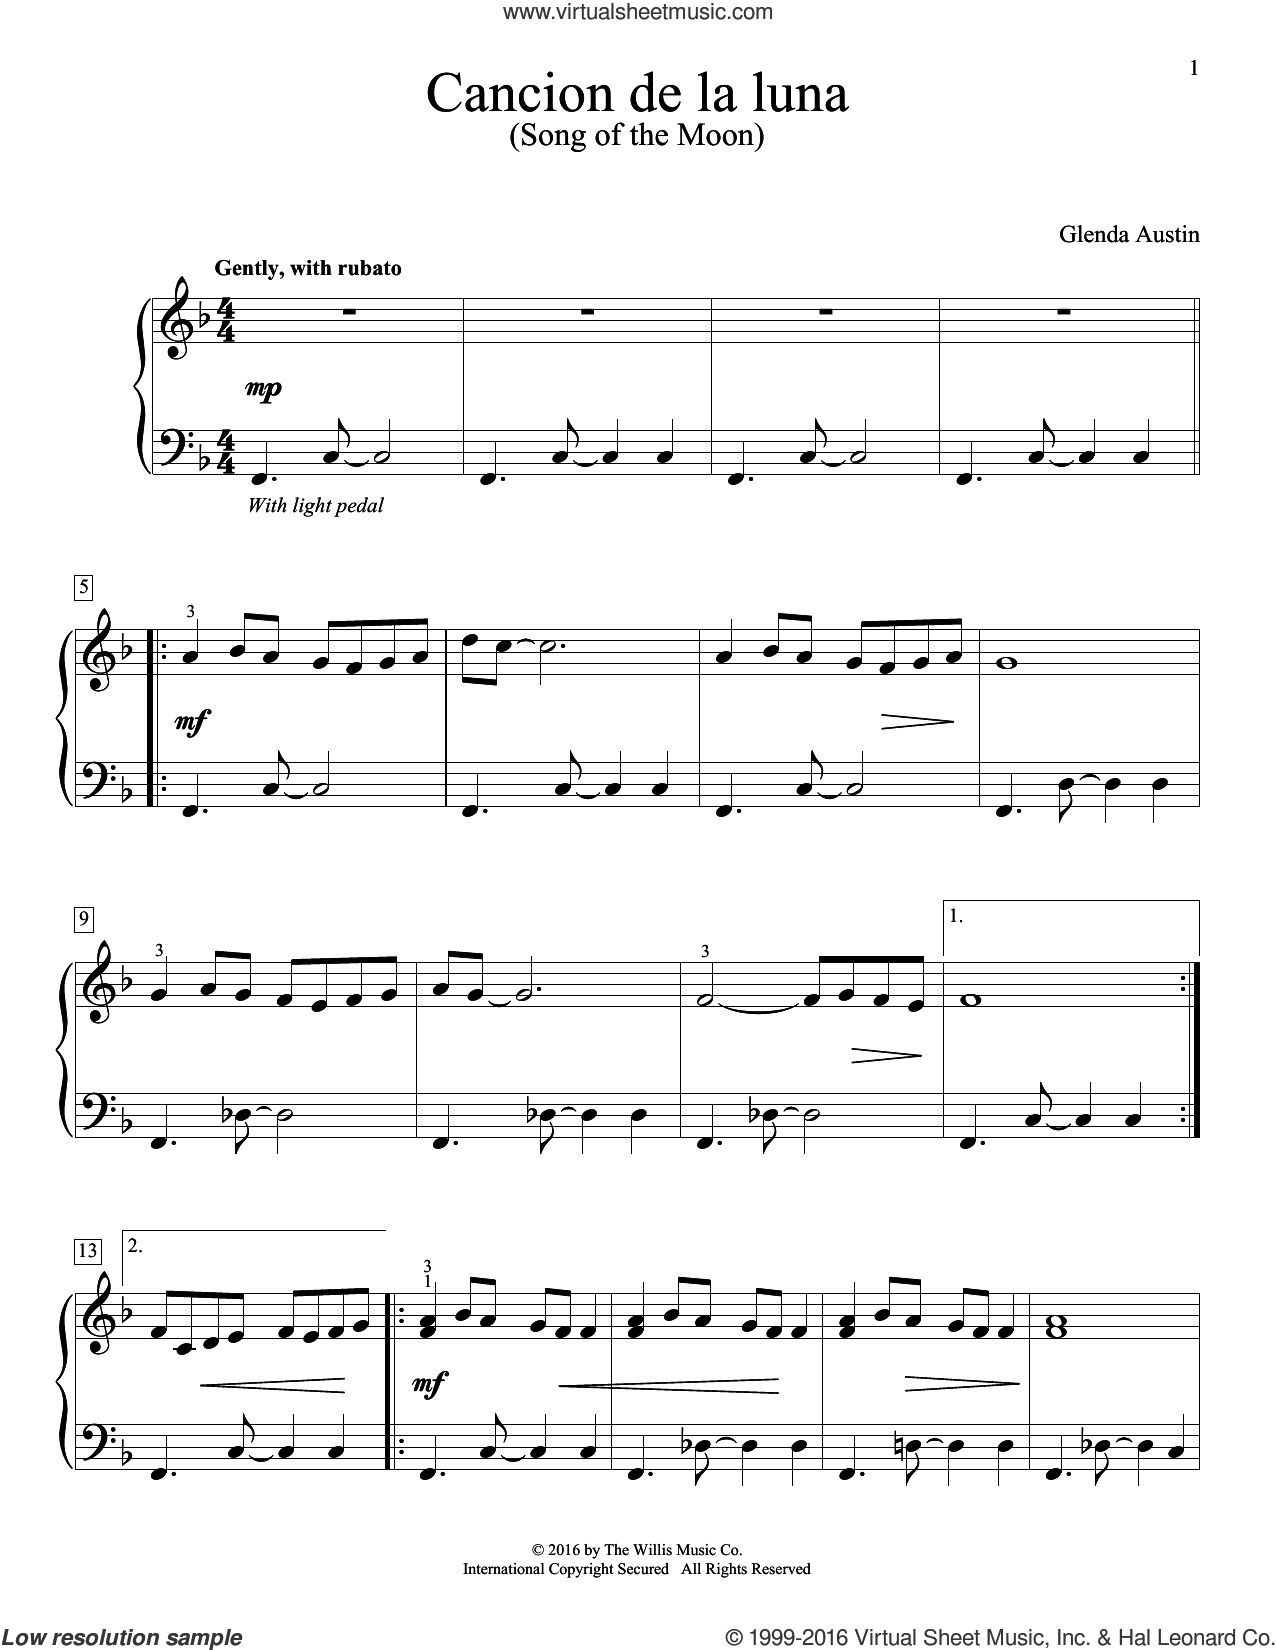 Cancion De La Luna sheet music for piano solo by Glenda Austin, intermediate skill level